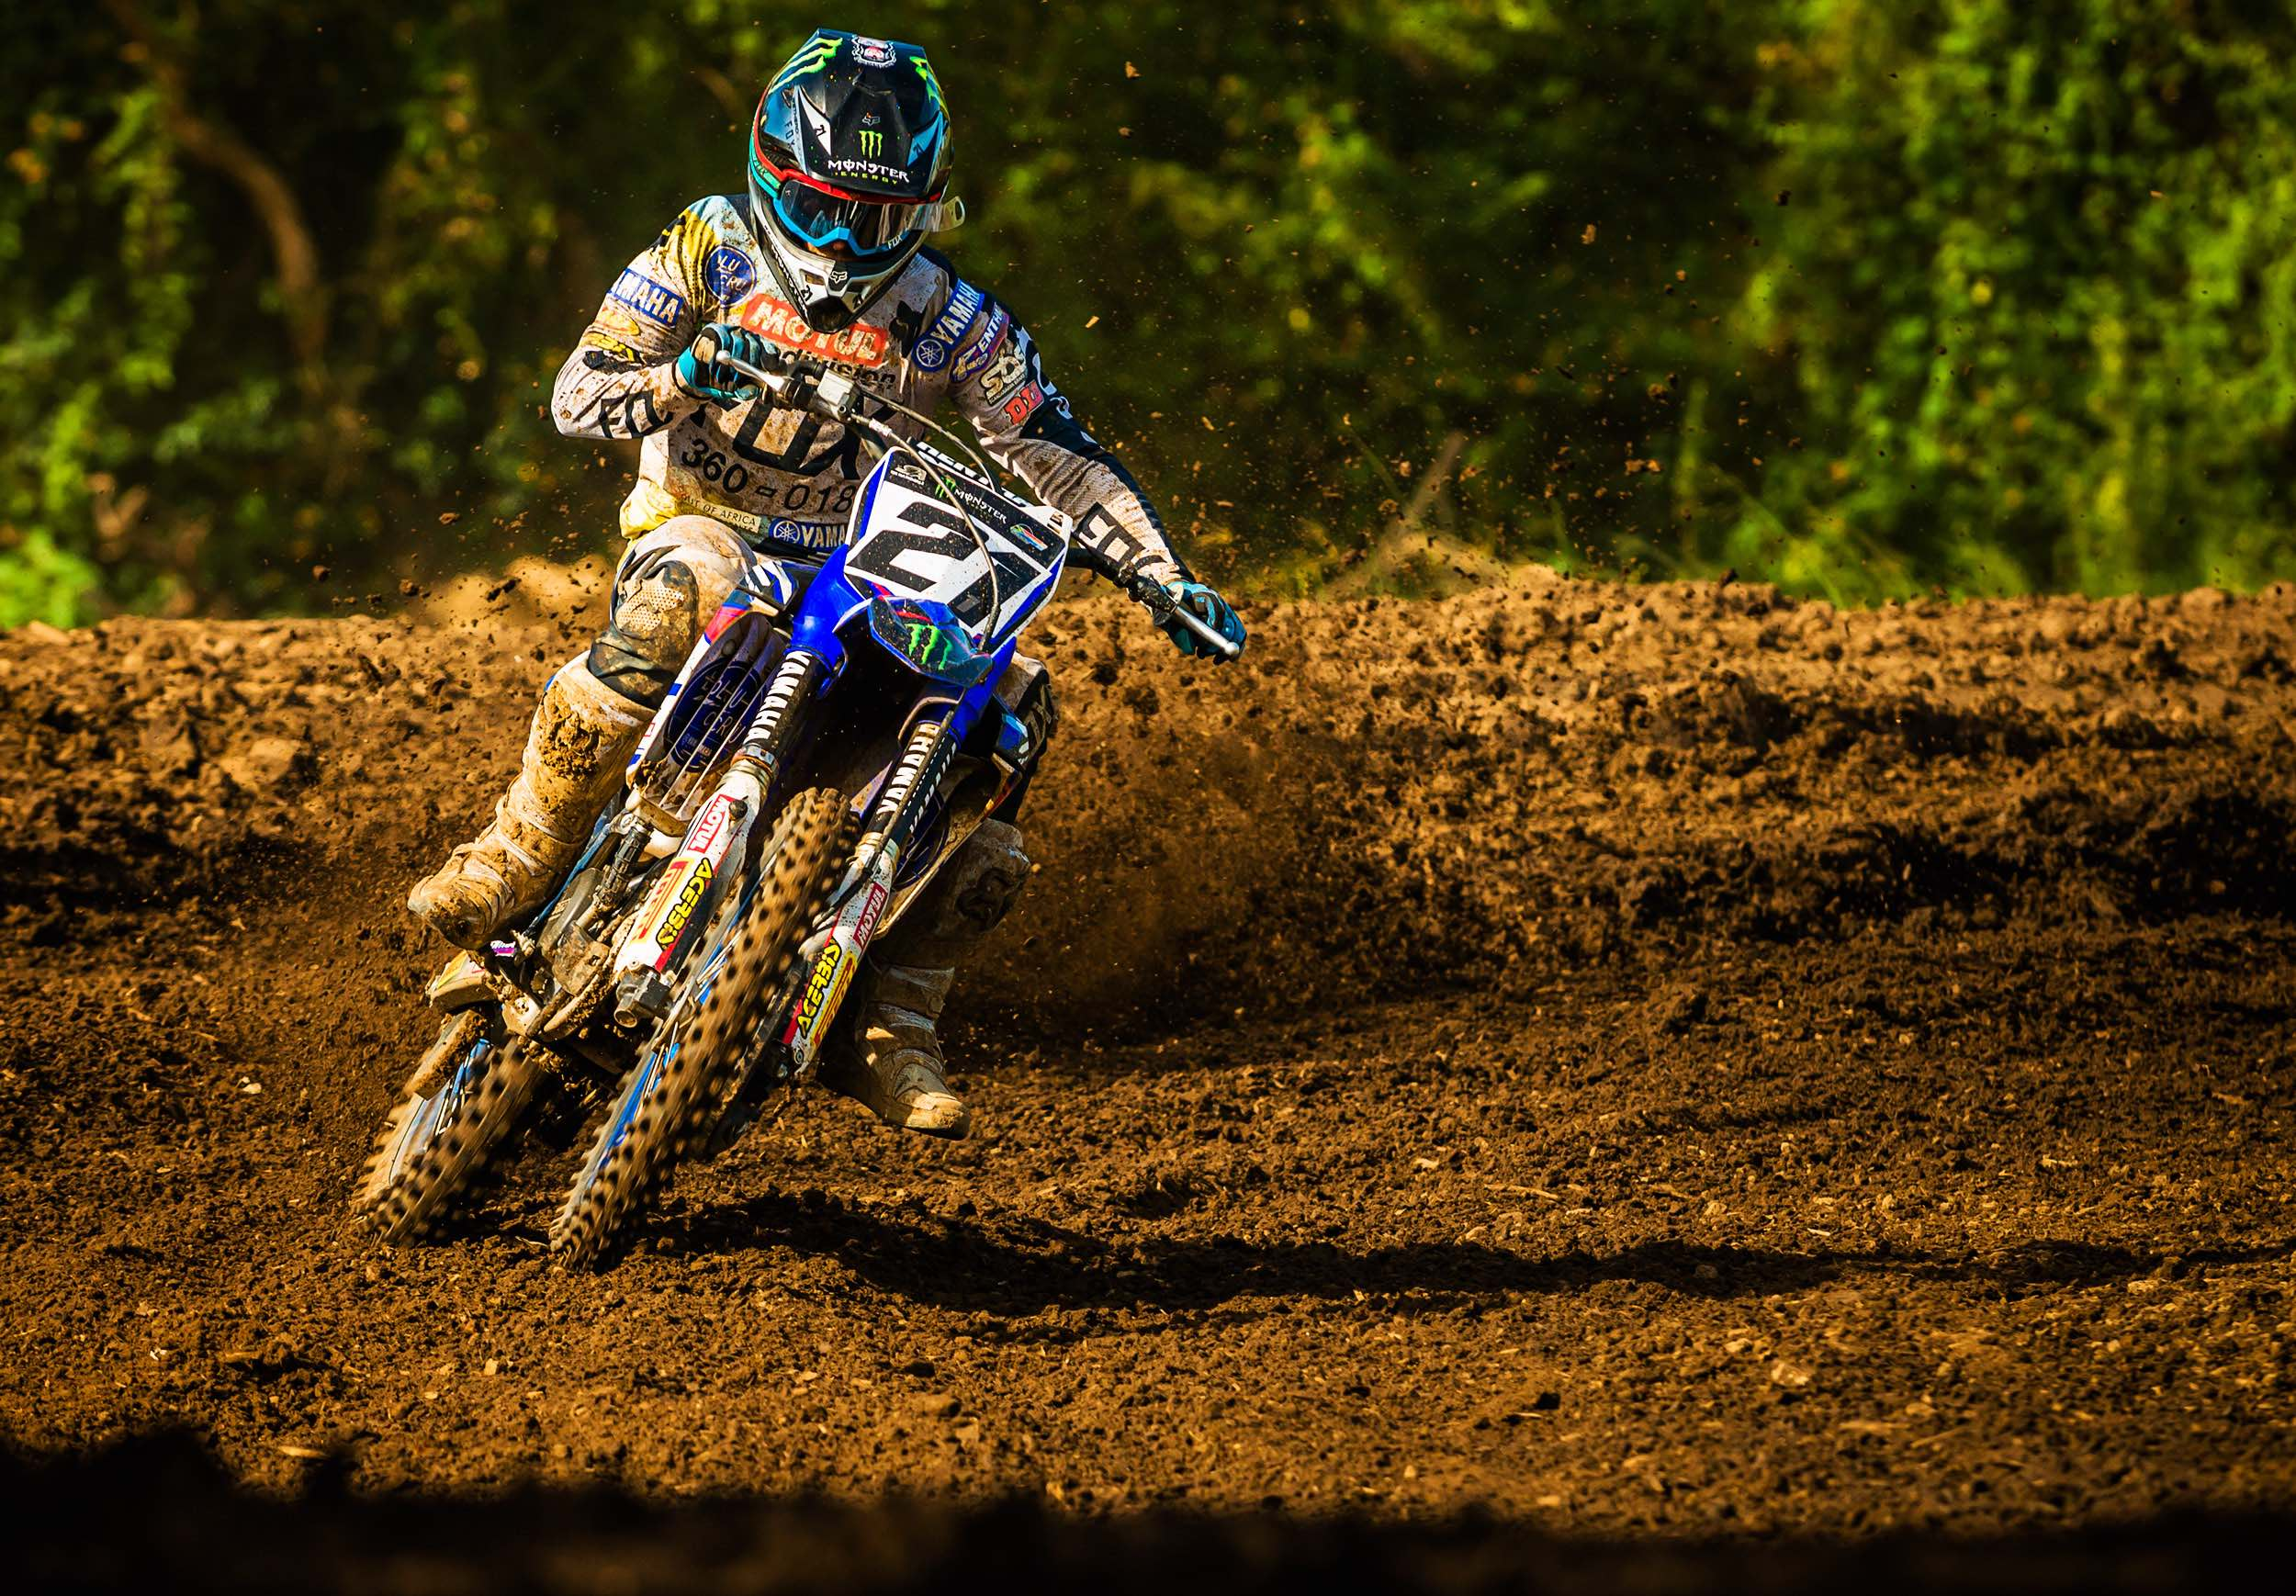 David Goosen with a convincing 2nd place in the MX2 Class at the Motocross Nationals